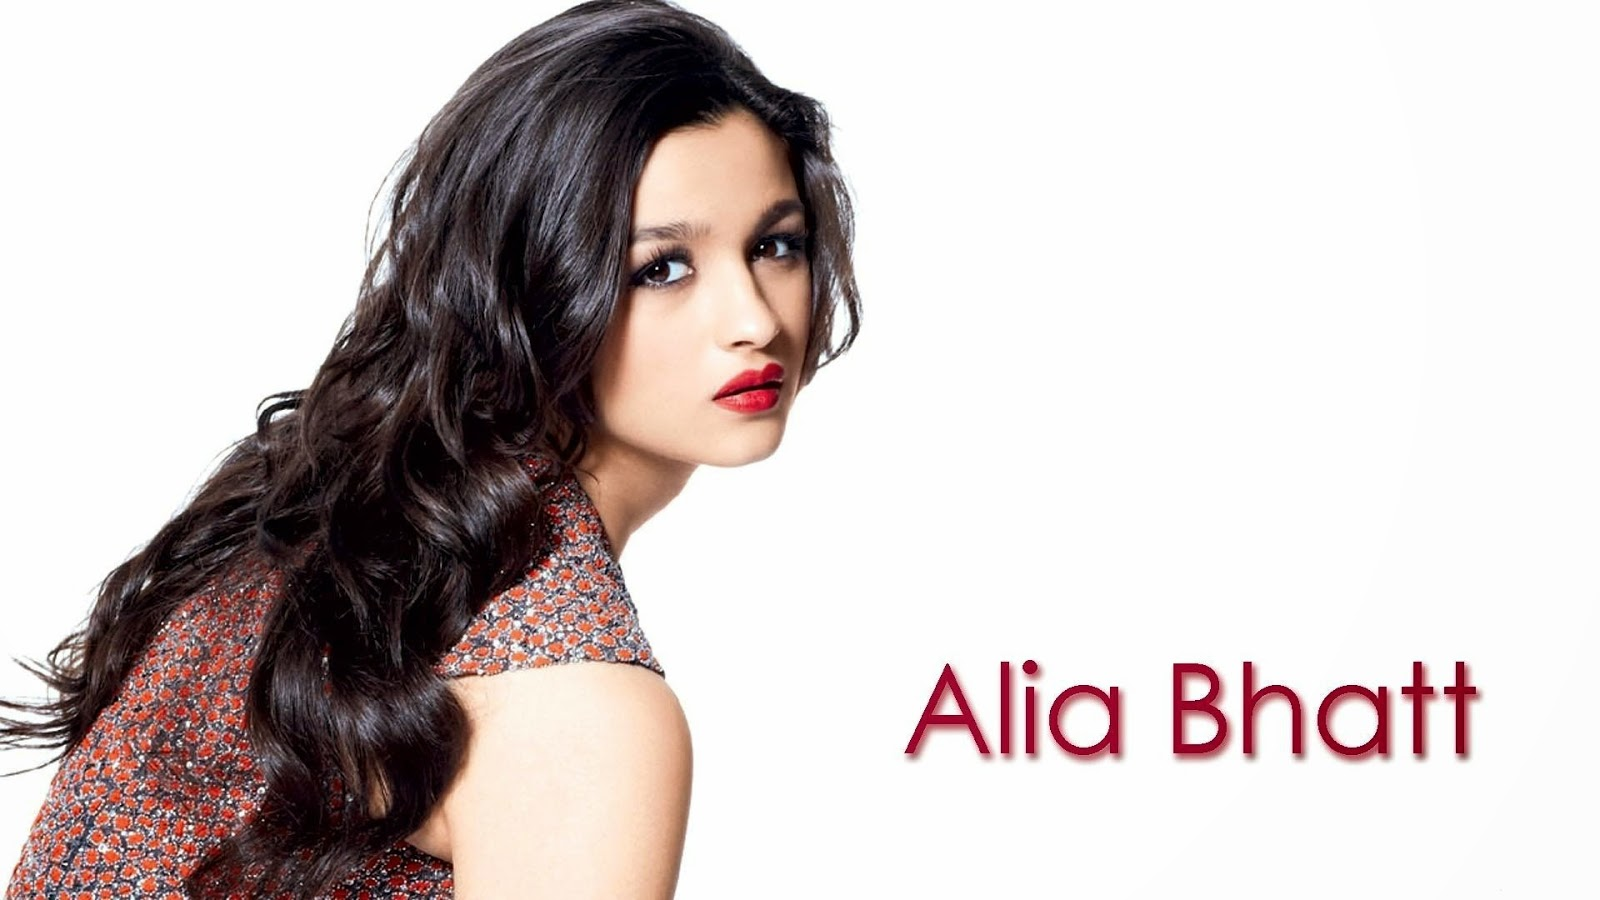 Alia Bhatt Hot unseen hd wallpapers collection